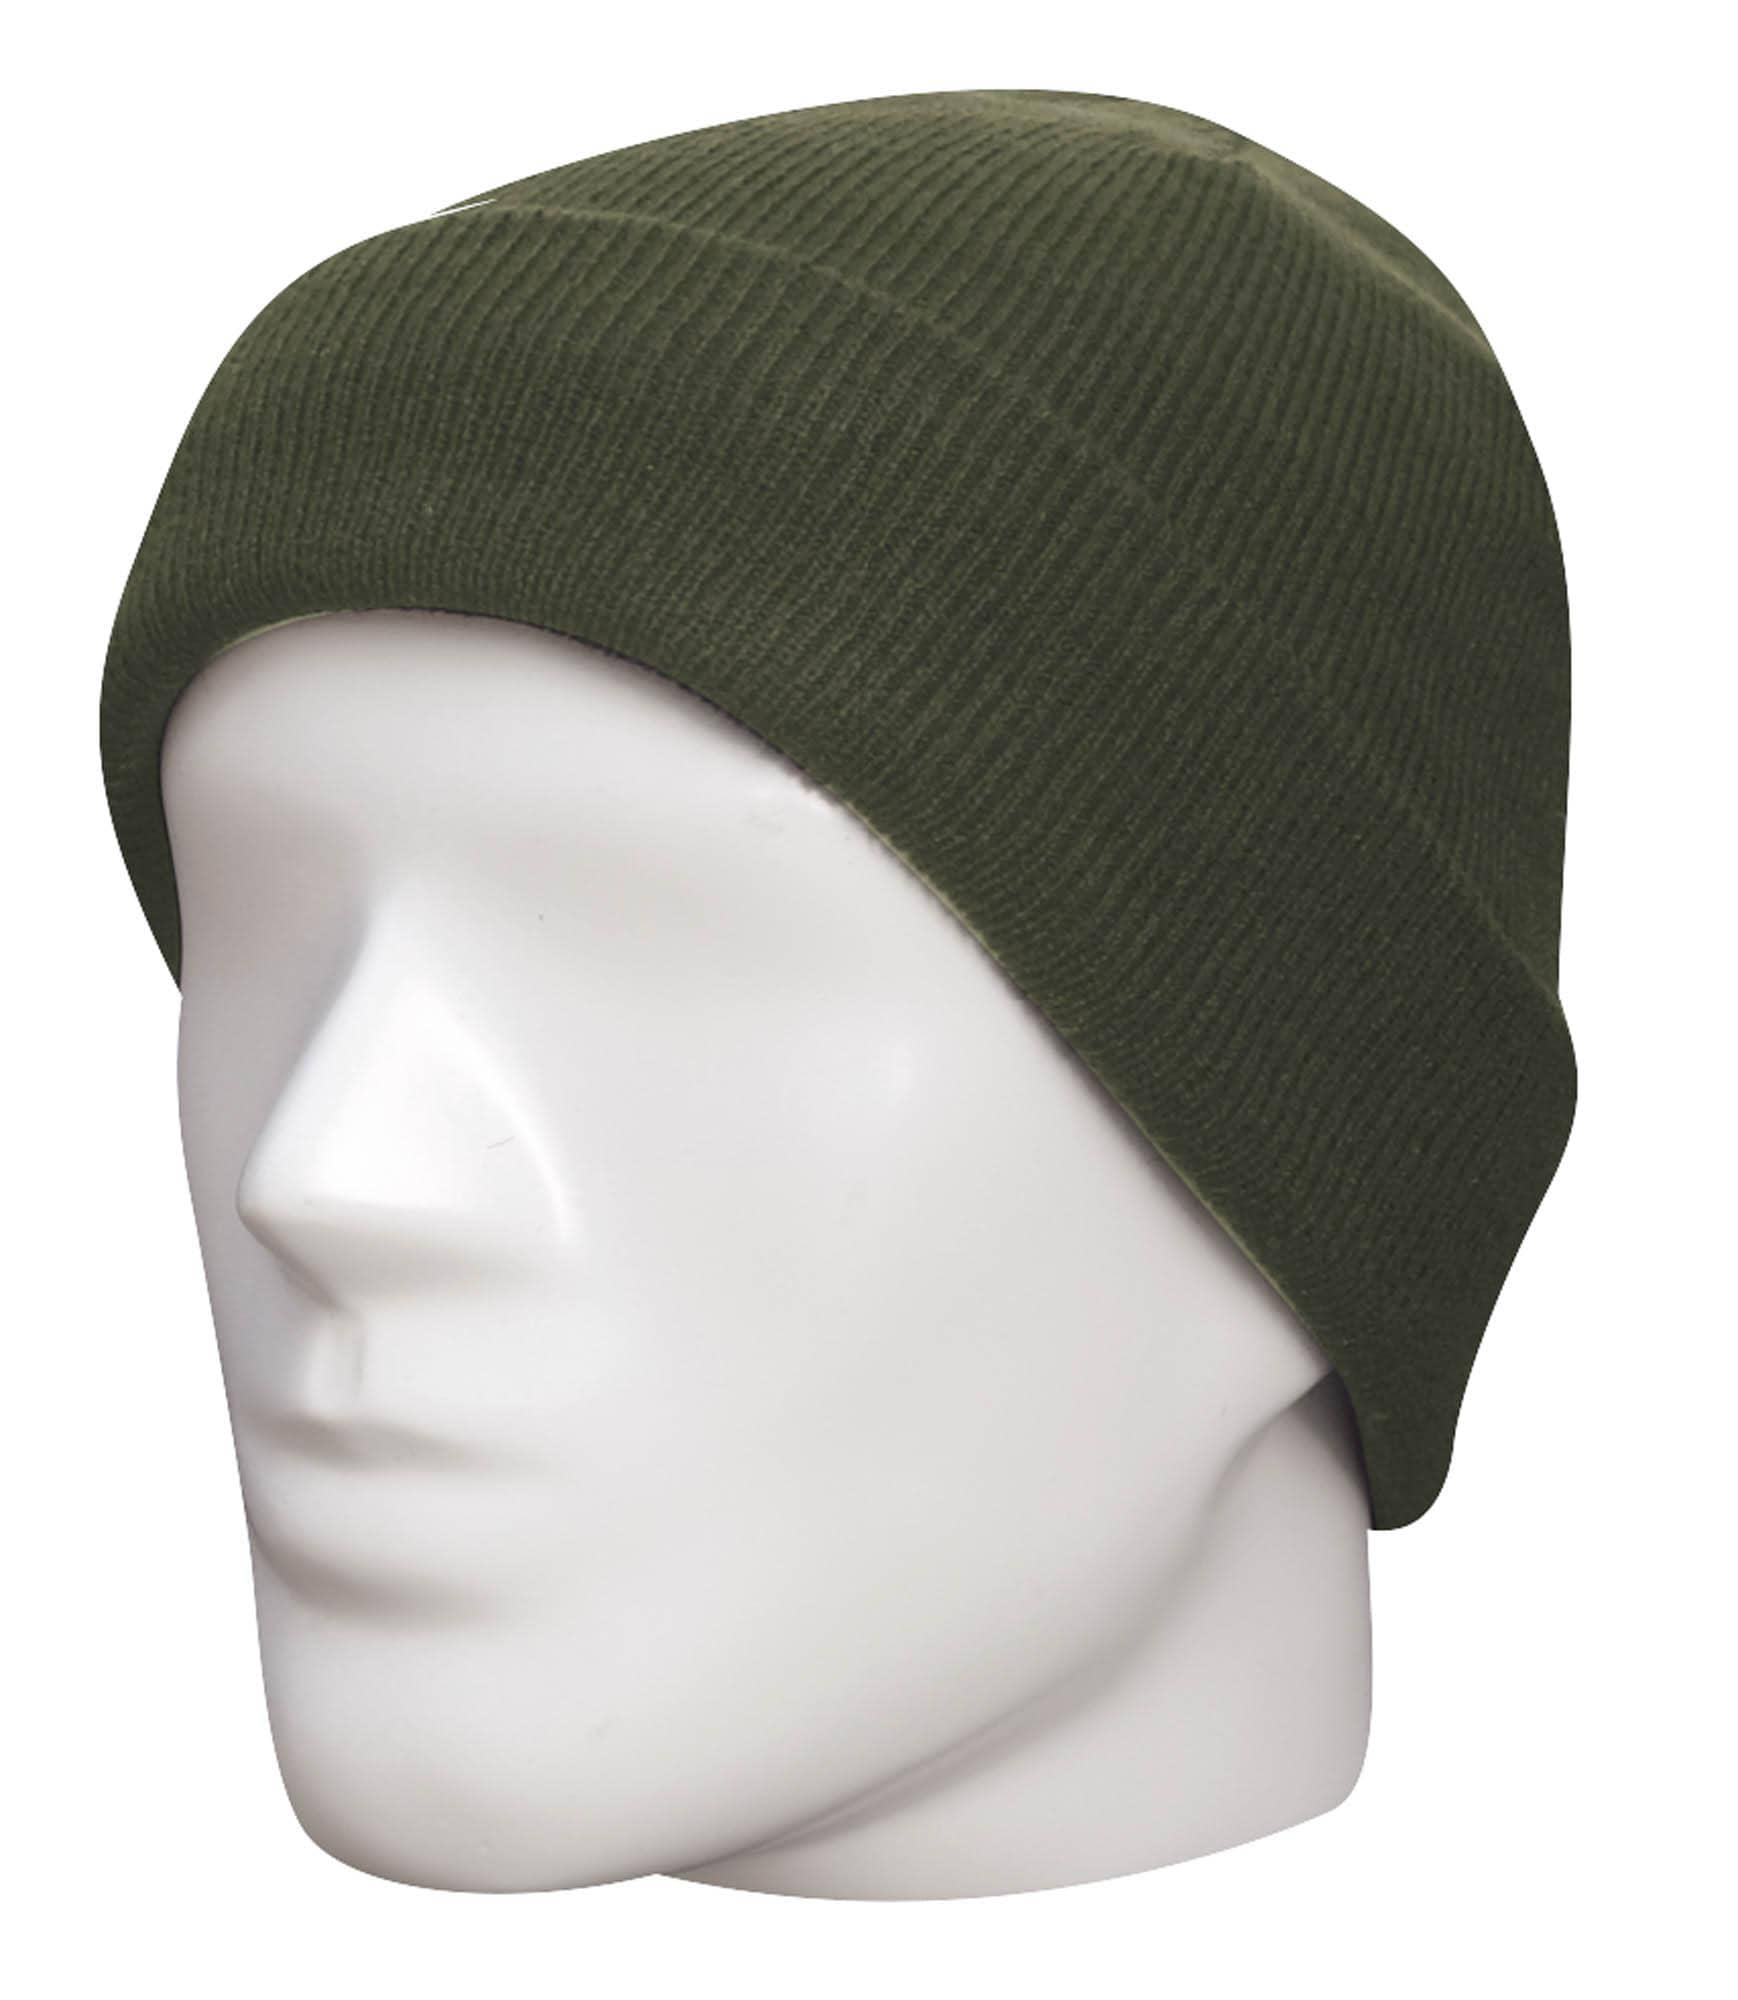 t791202-Bonnet militaire maille thinsulate - T791203